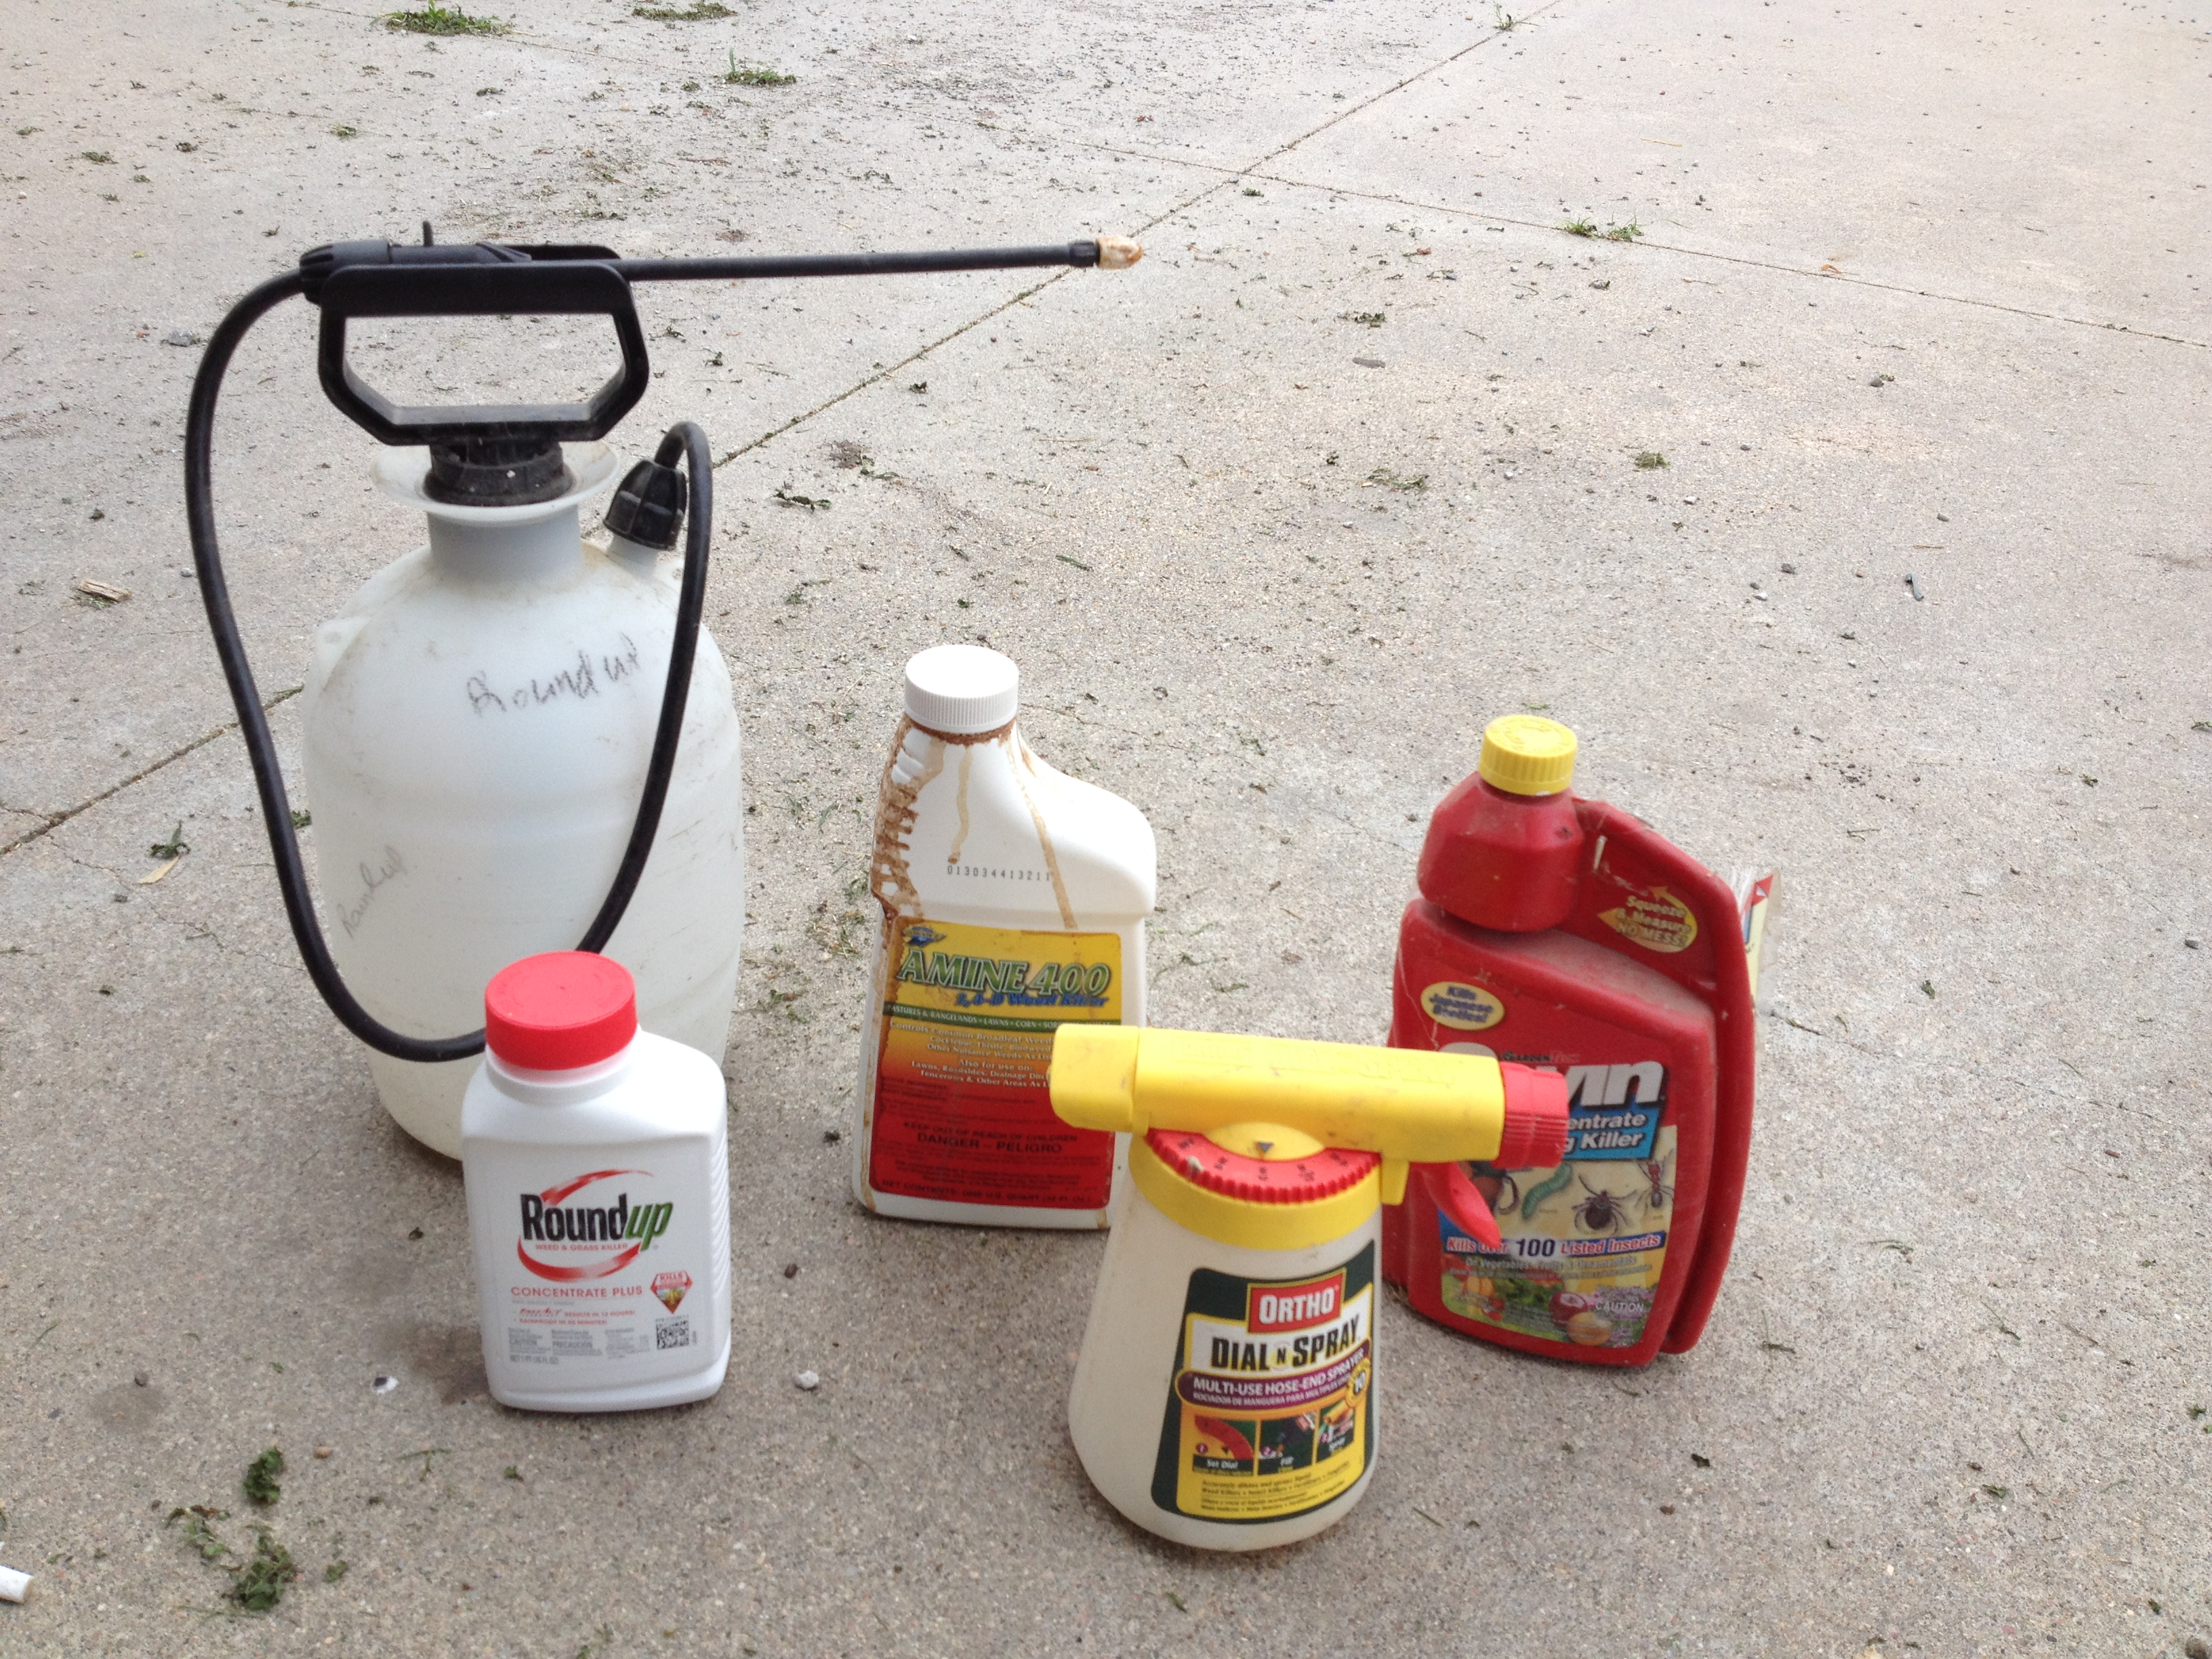 Lawn pesticides and equipment